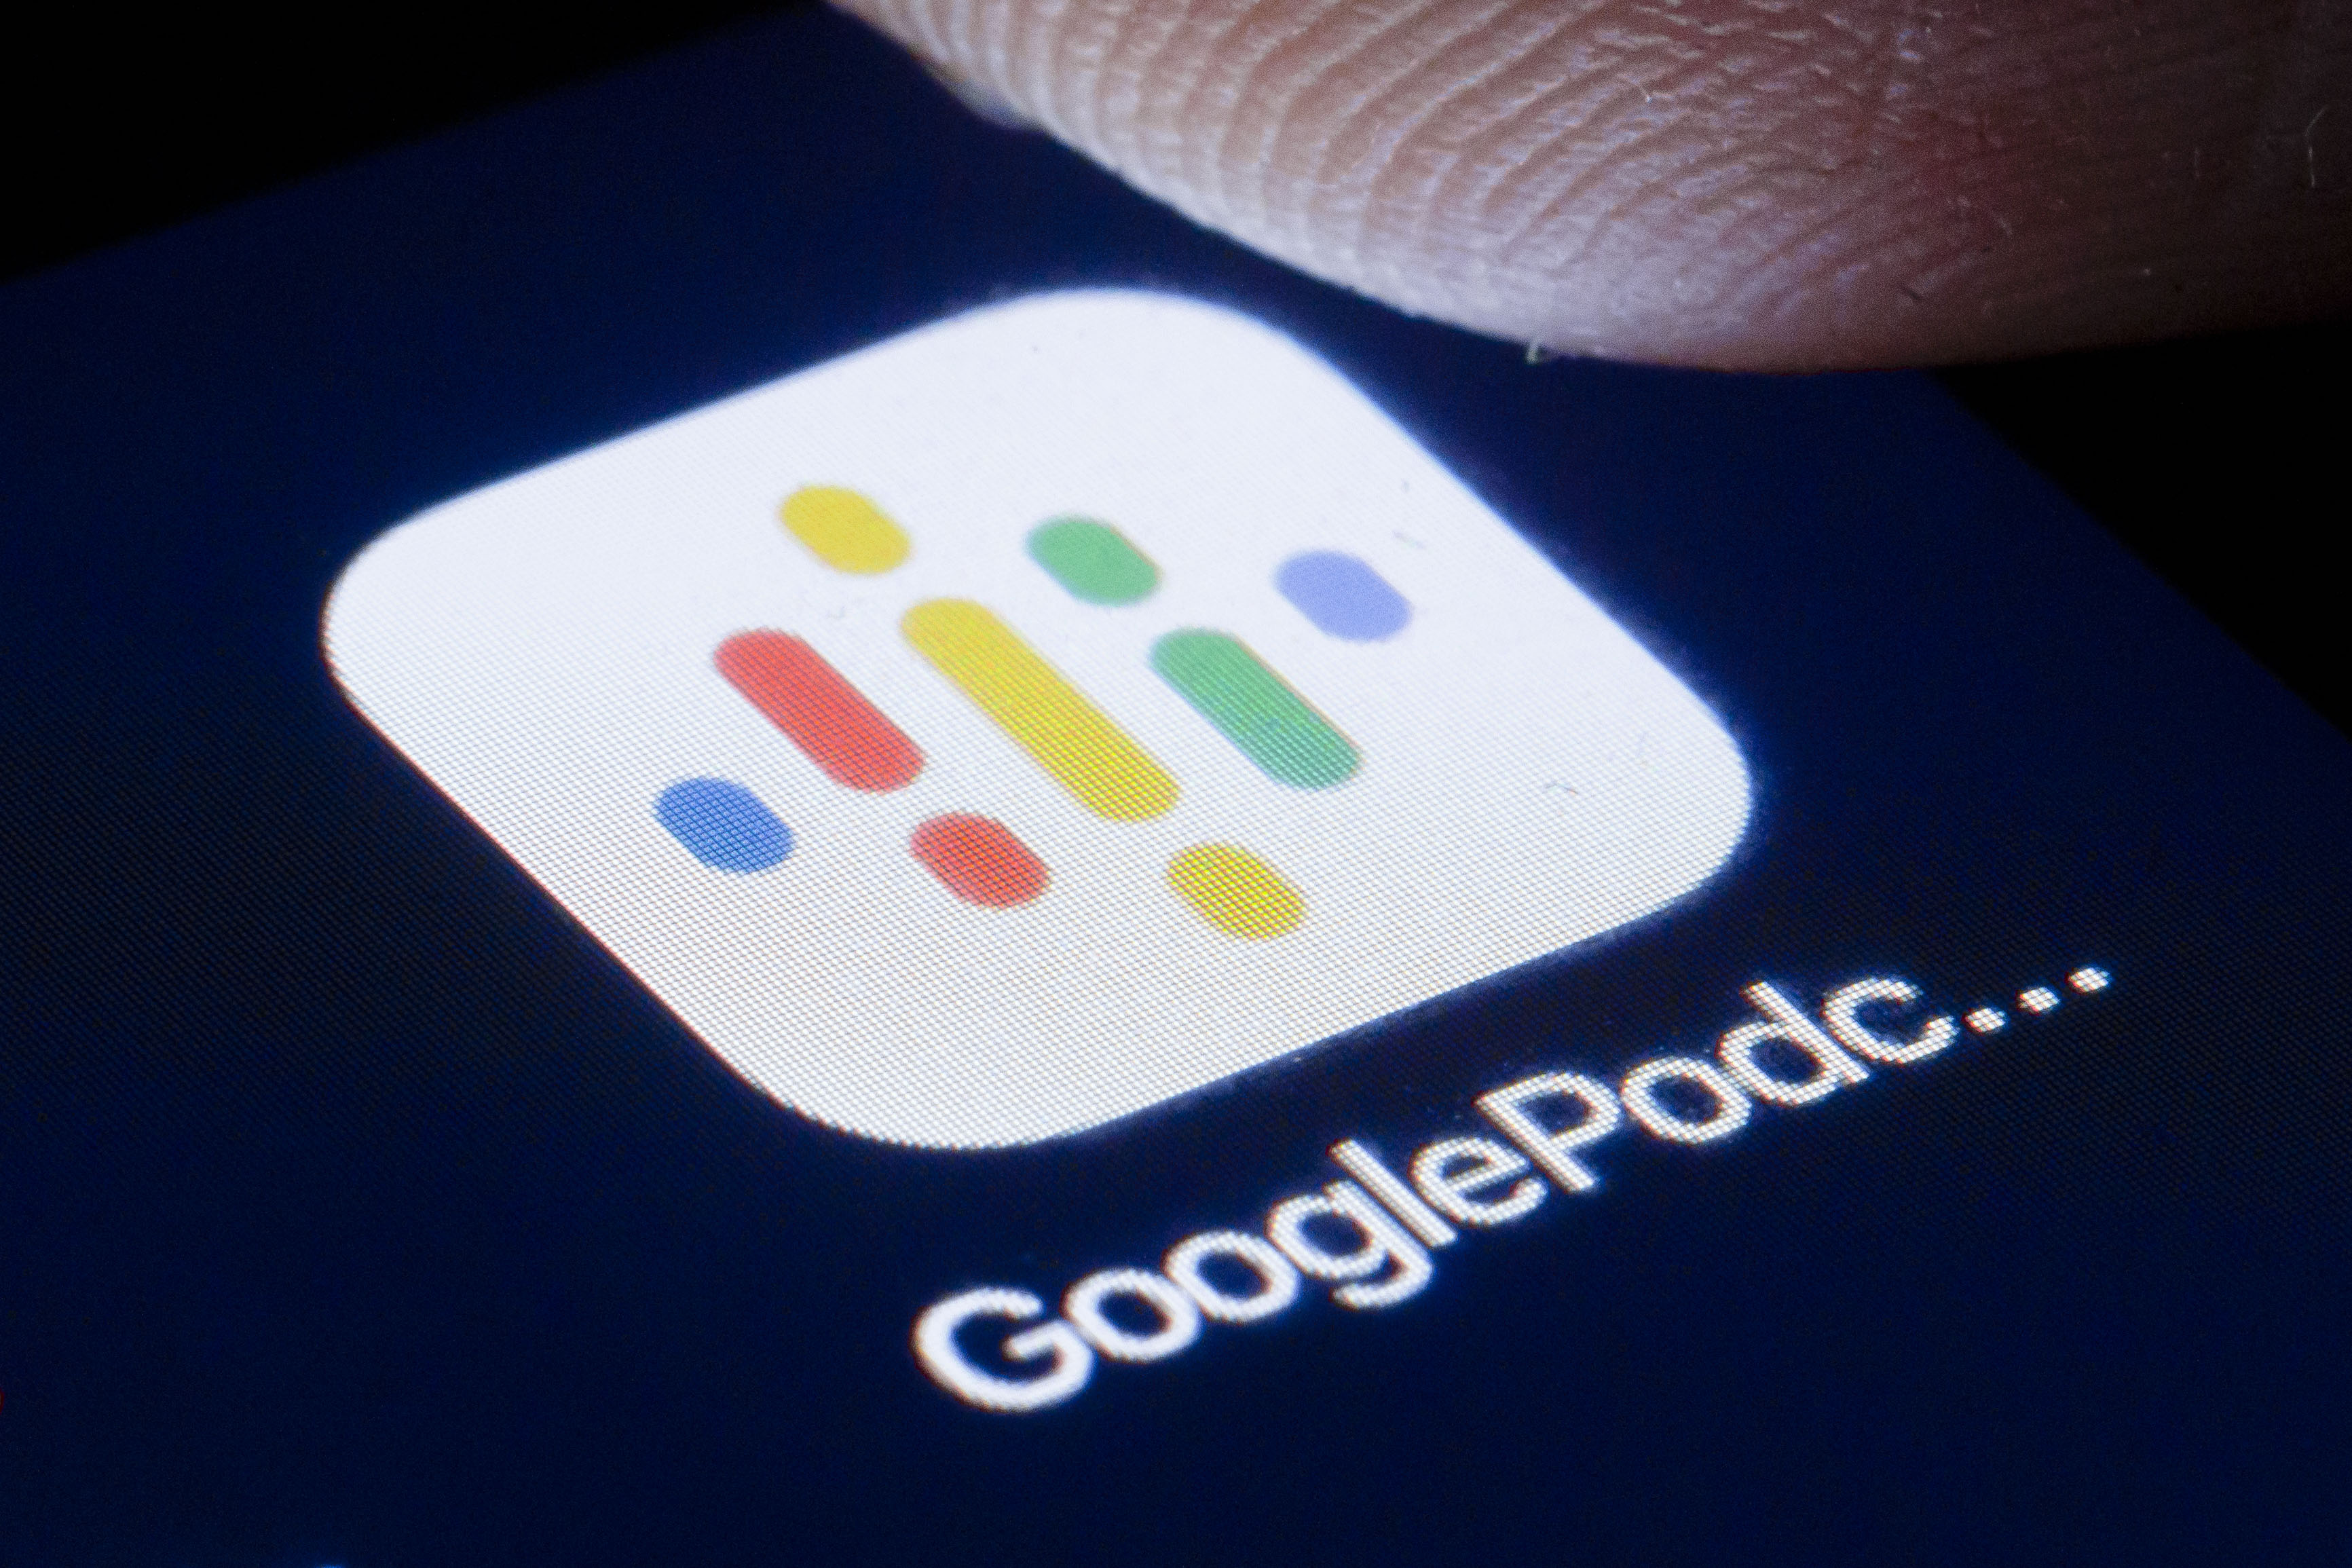 Google Podcasts lets you add shows using their RSS feeds